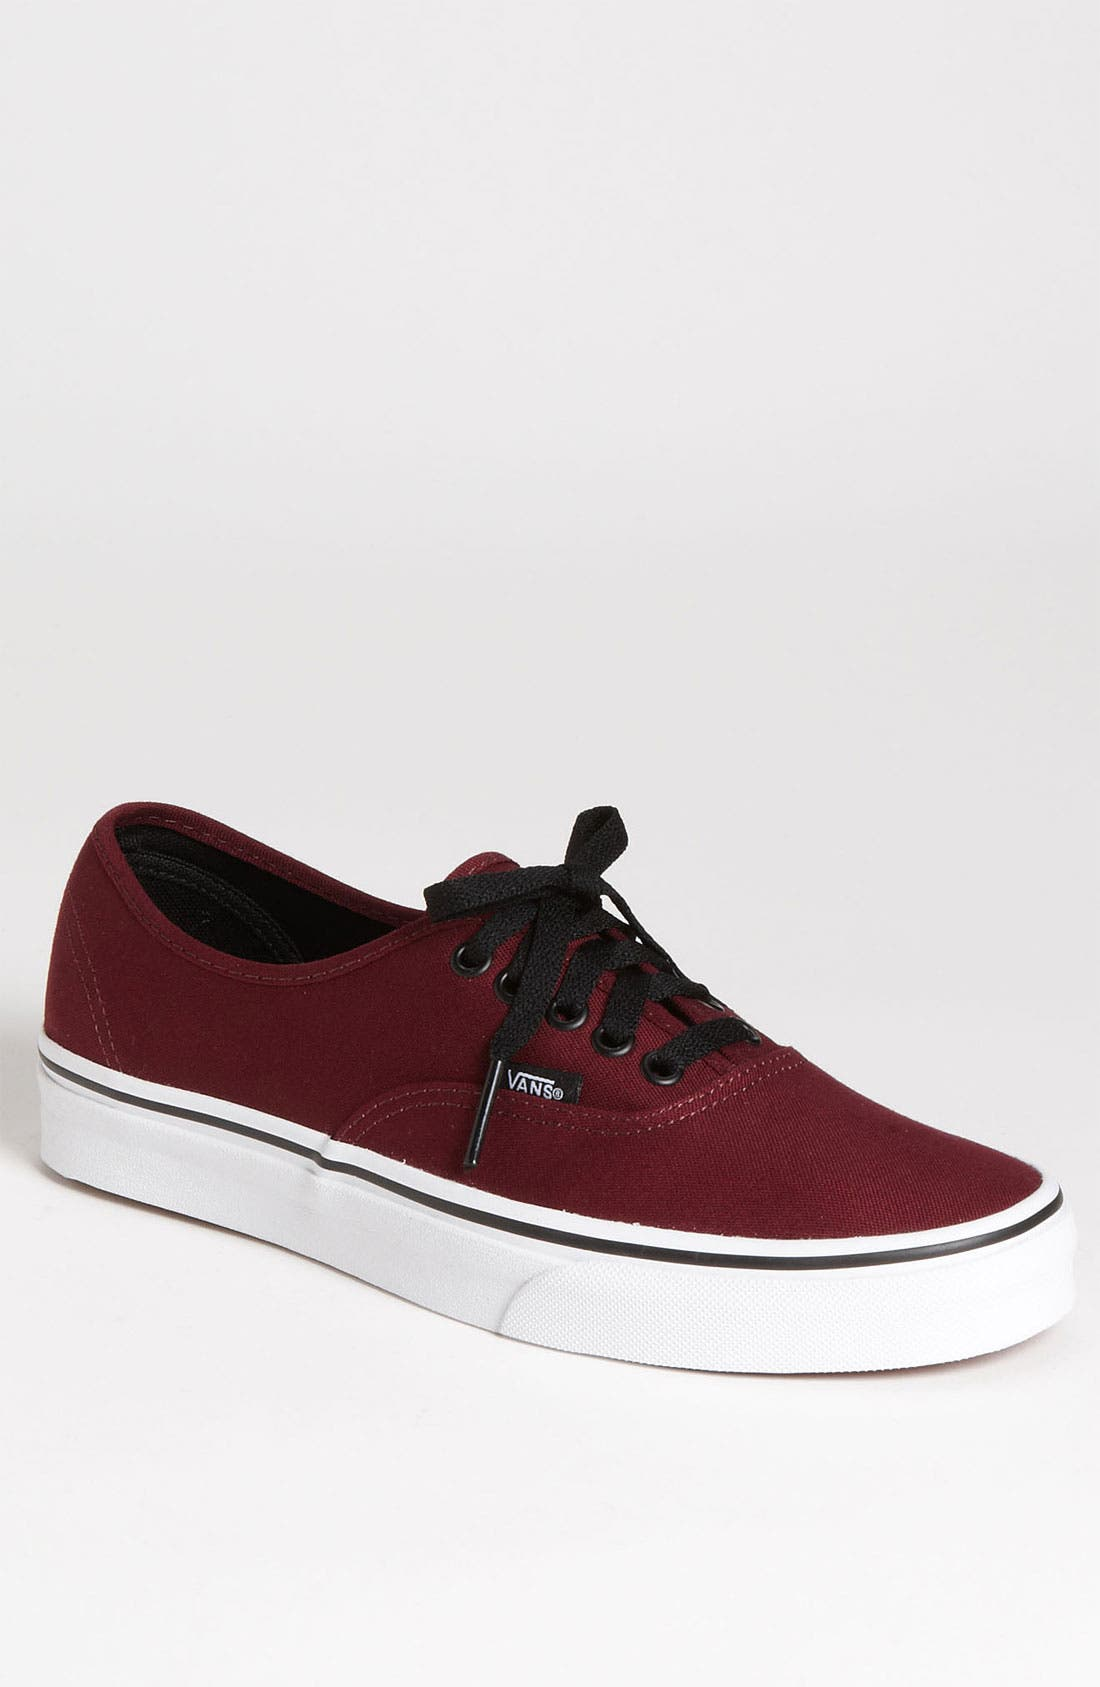 Alternate Image 1 Selected - Vans 'Authentic' Sneaker (Men)